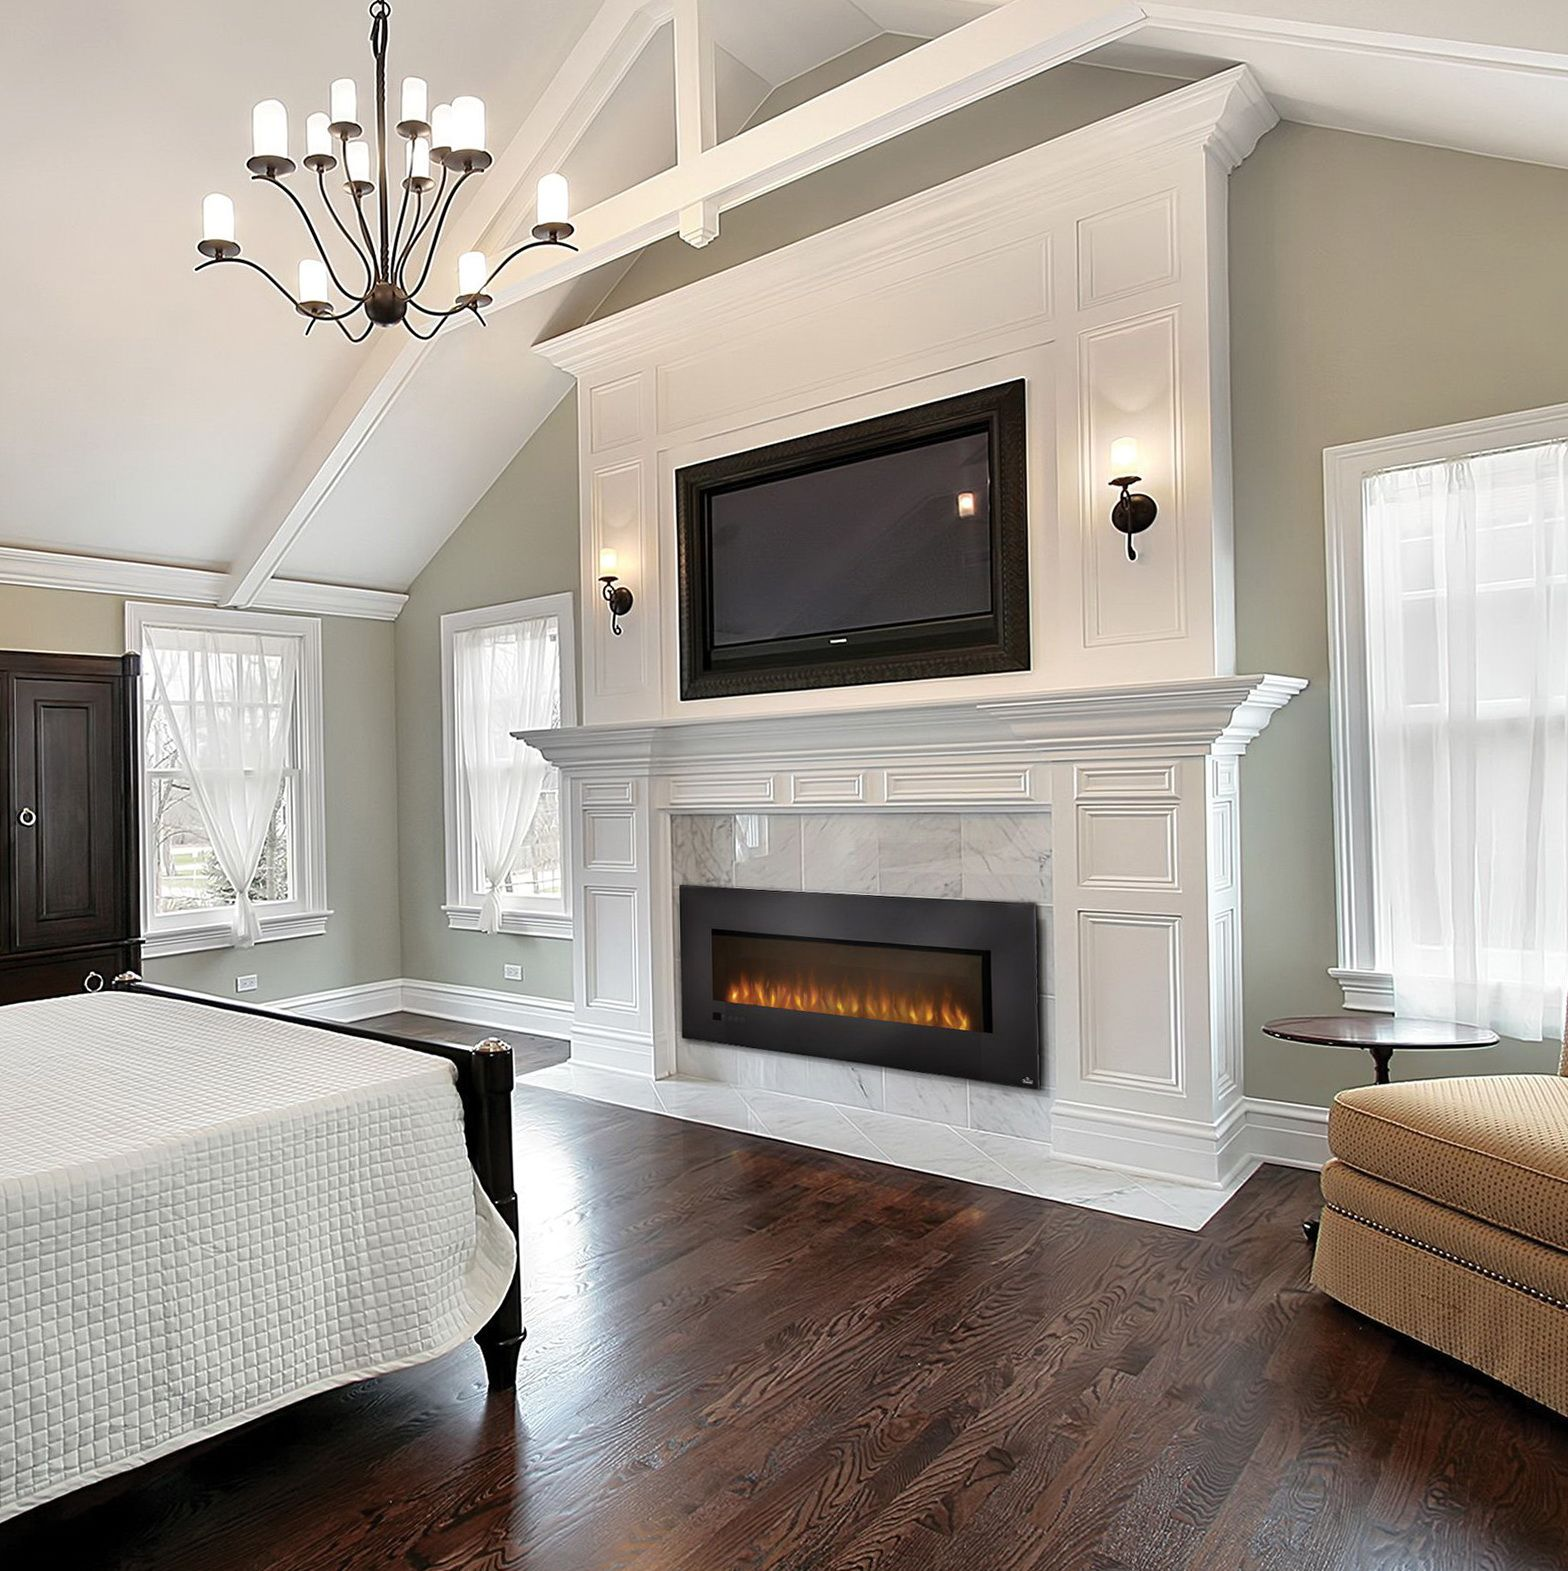 Large Electric Fireplace Insert Luxurious Bedrooms Bedroom Fireplace Linear Fireplace